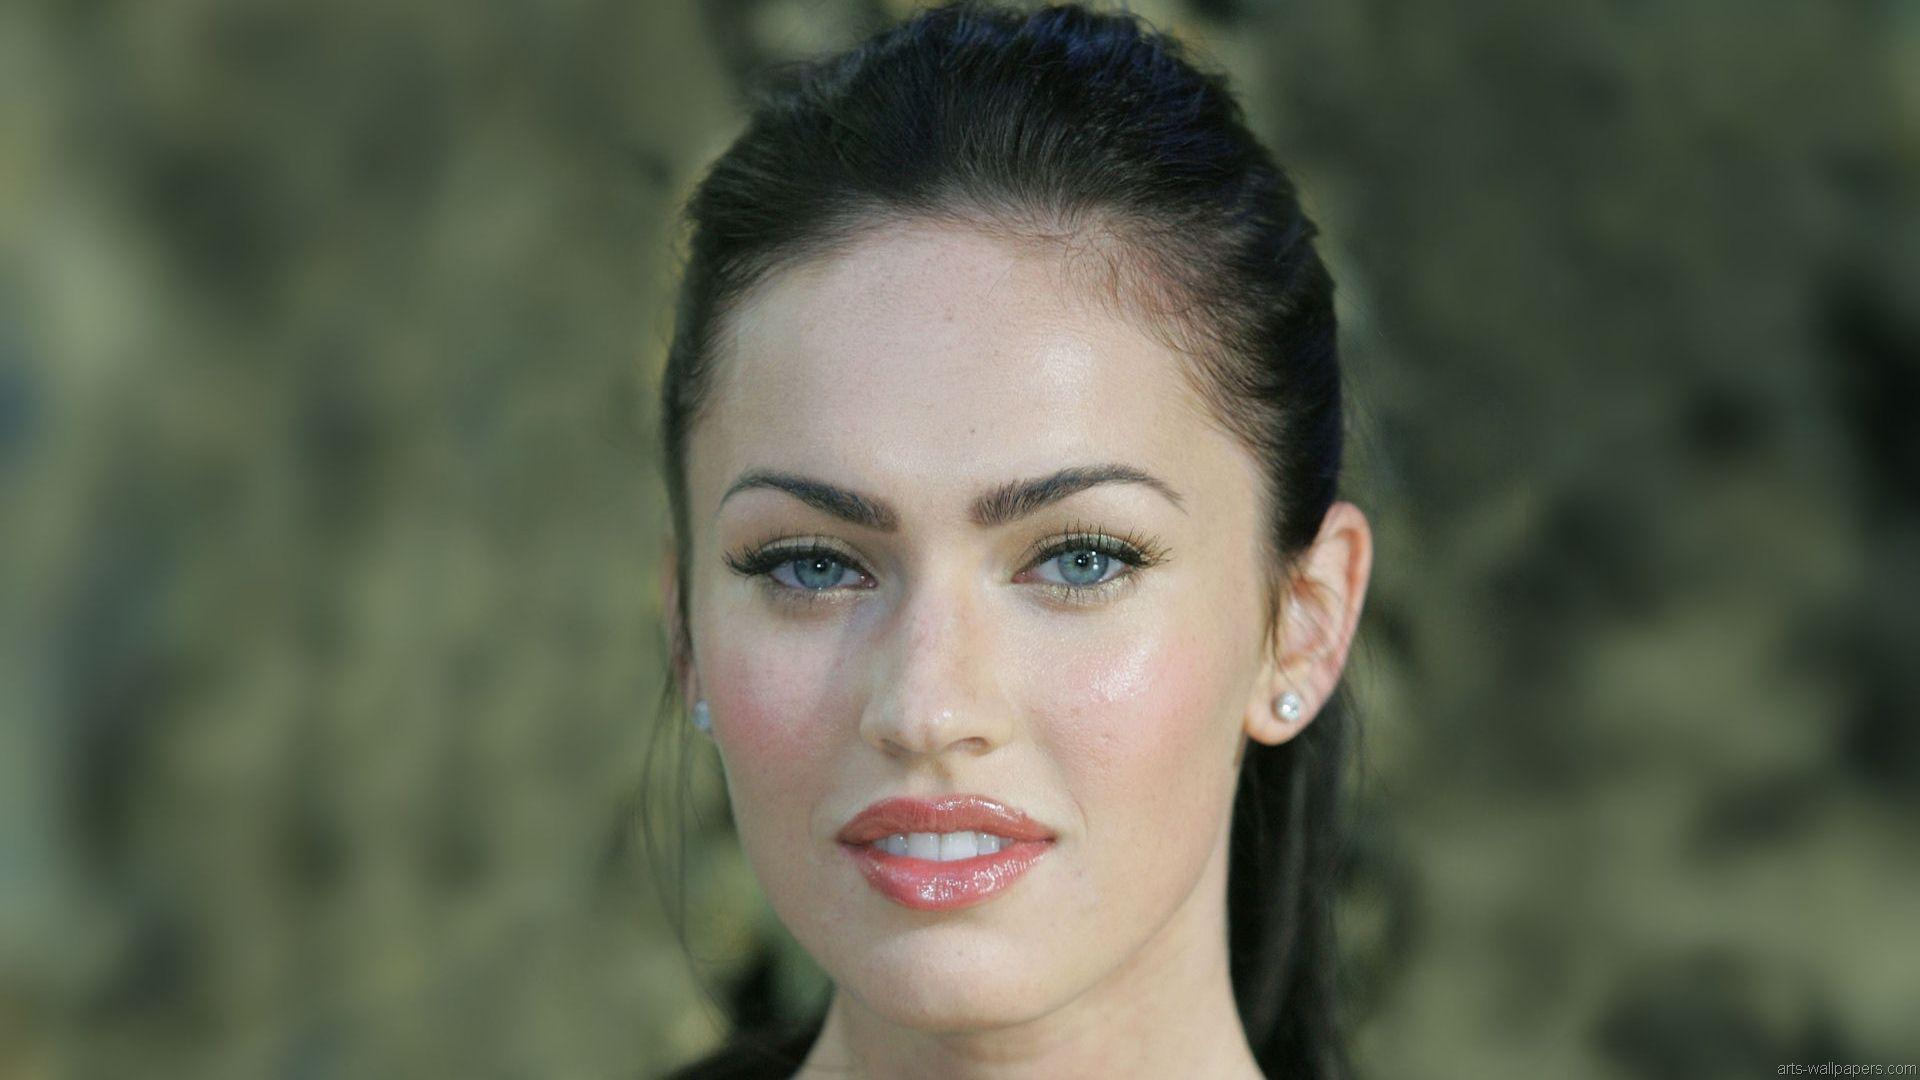 megan fox hd – 1920×1080 High Definition Wallpaper, Background ...